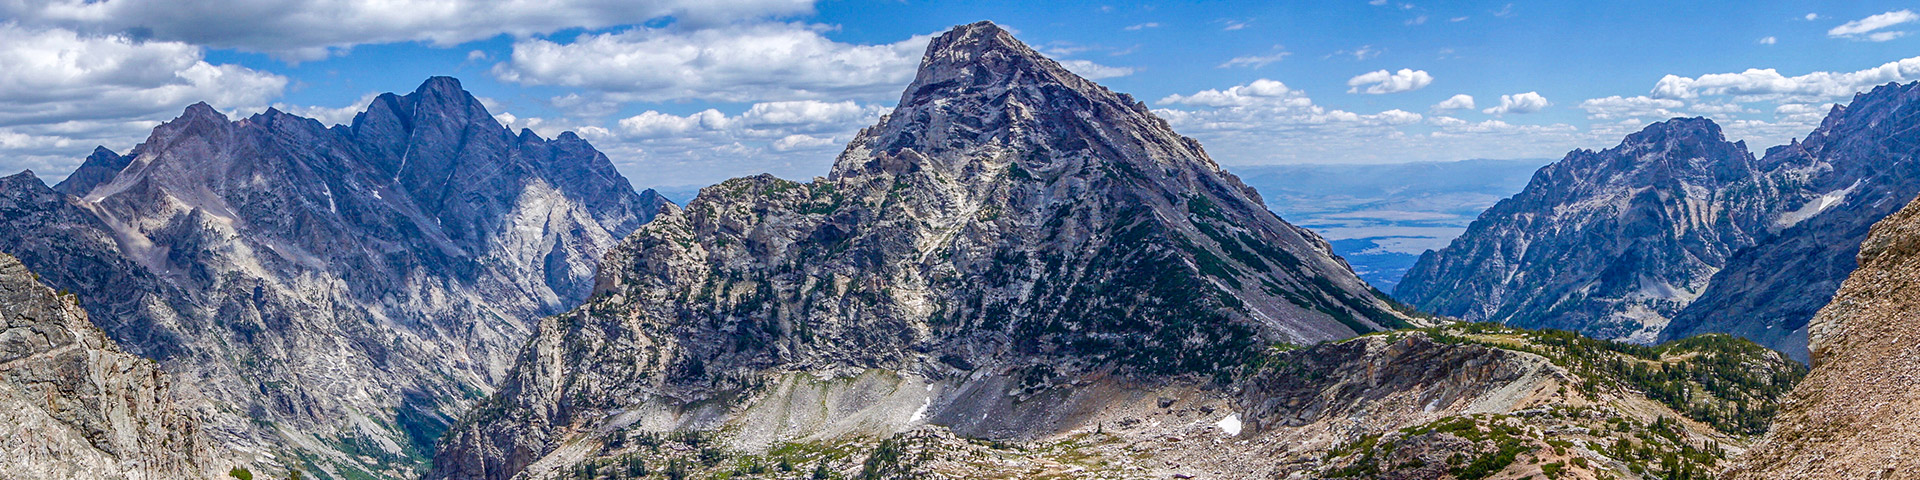 Views of the Paintbrush Divide Hike in Grand Tetons